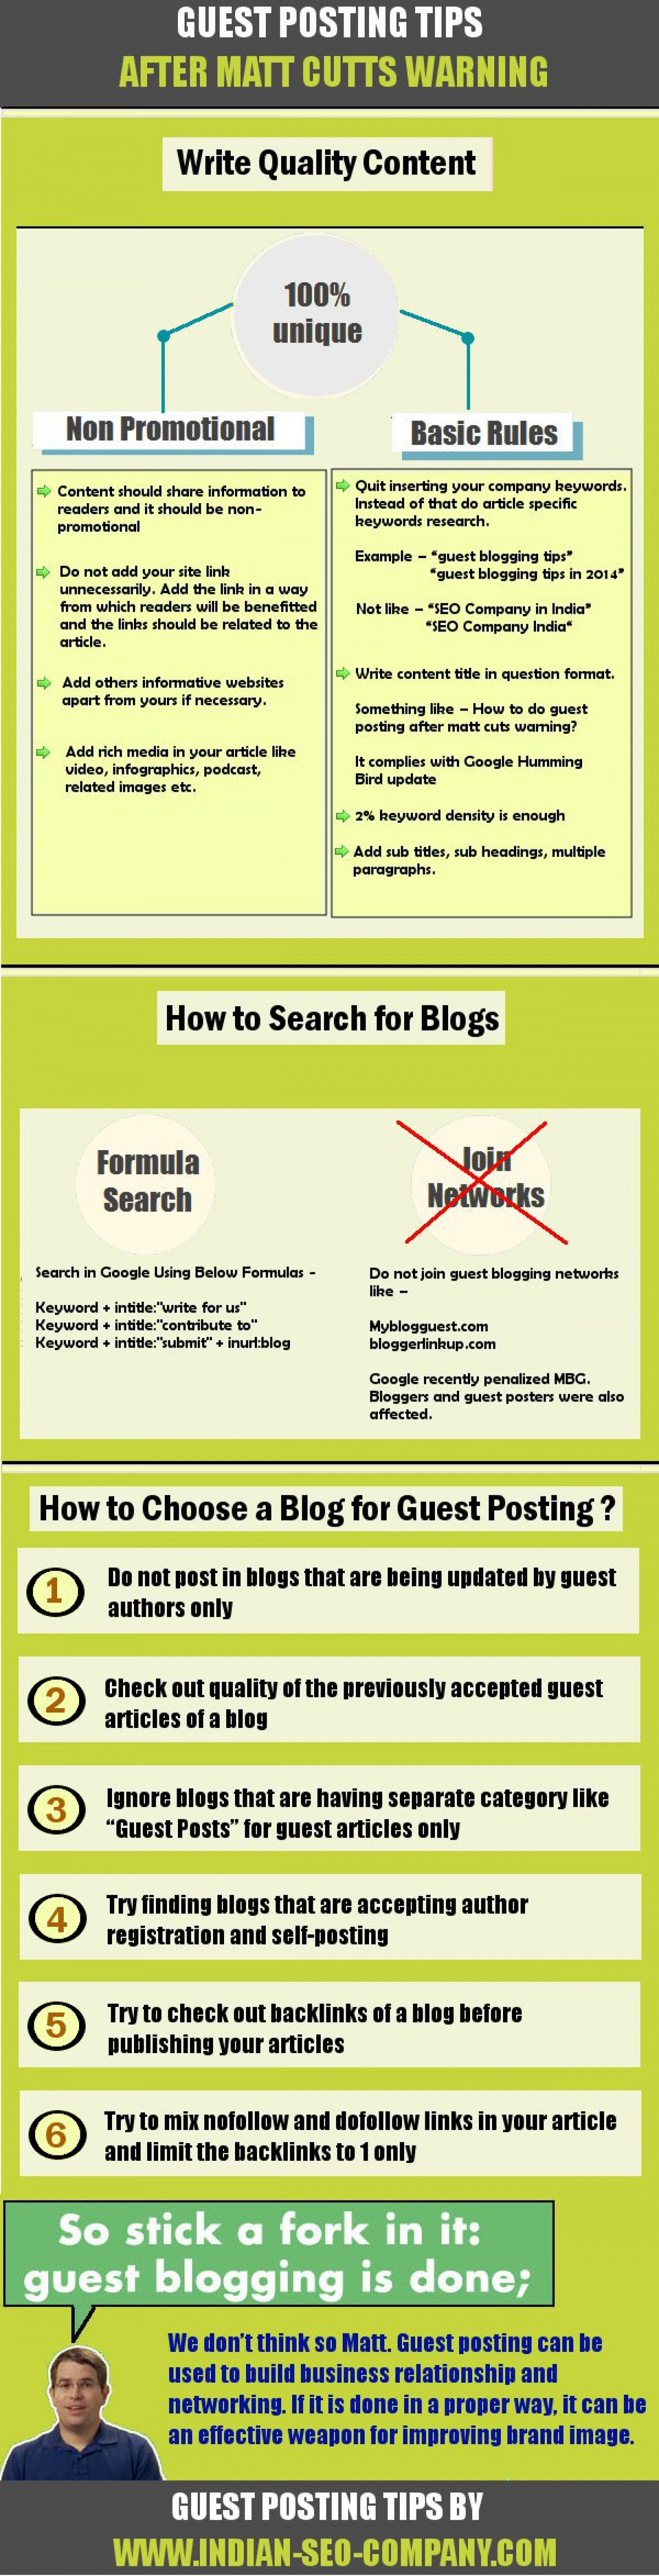 Guest Posting Tips After Matt Cutts Warning Infographic